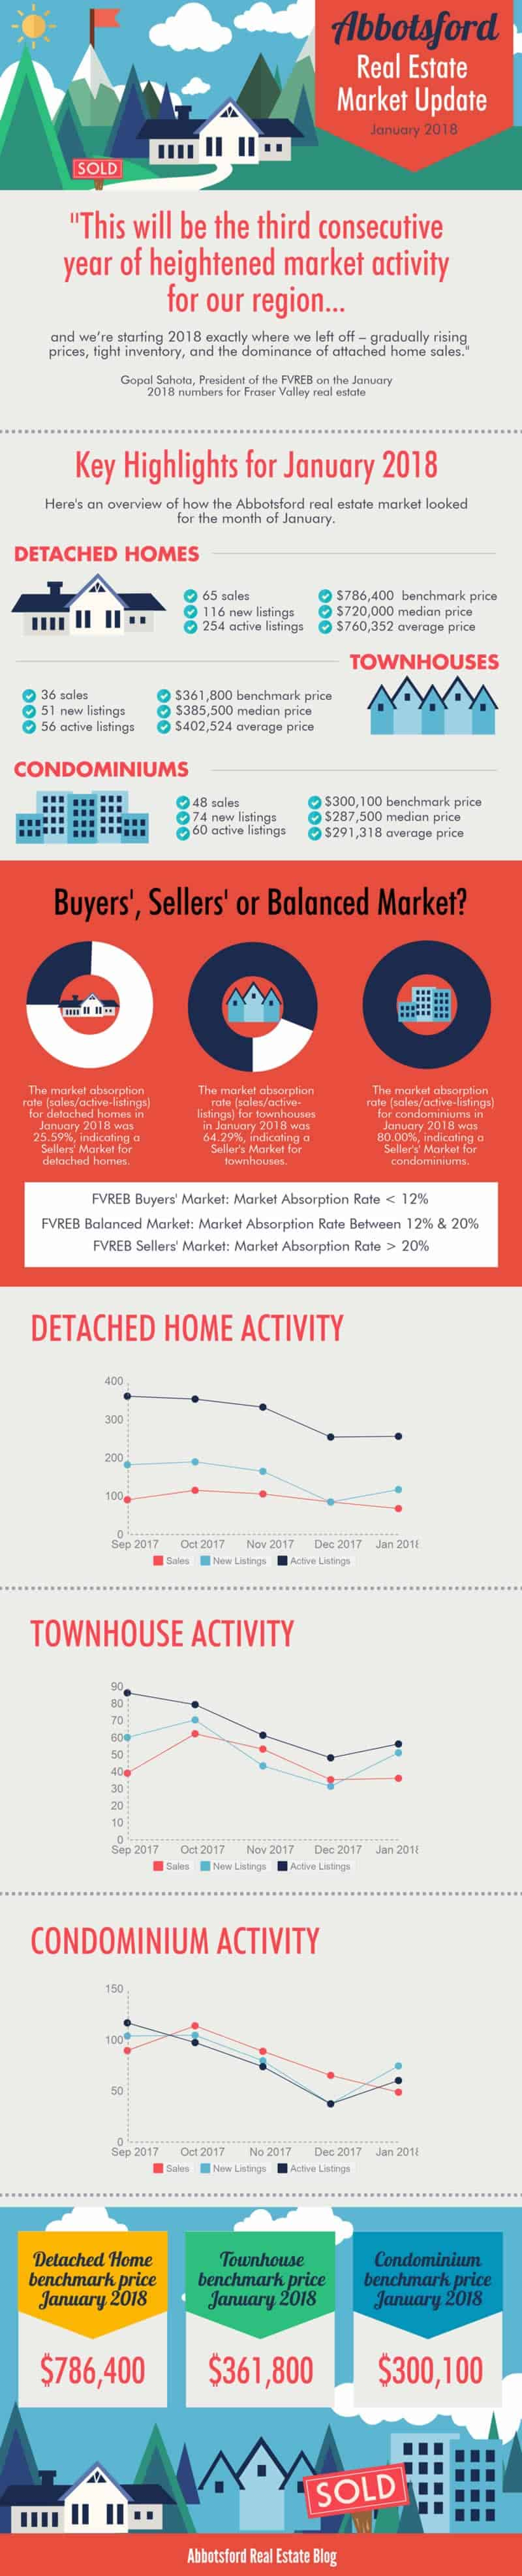 Abbotsford Townhouse Market Update January 2018 Infographic